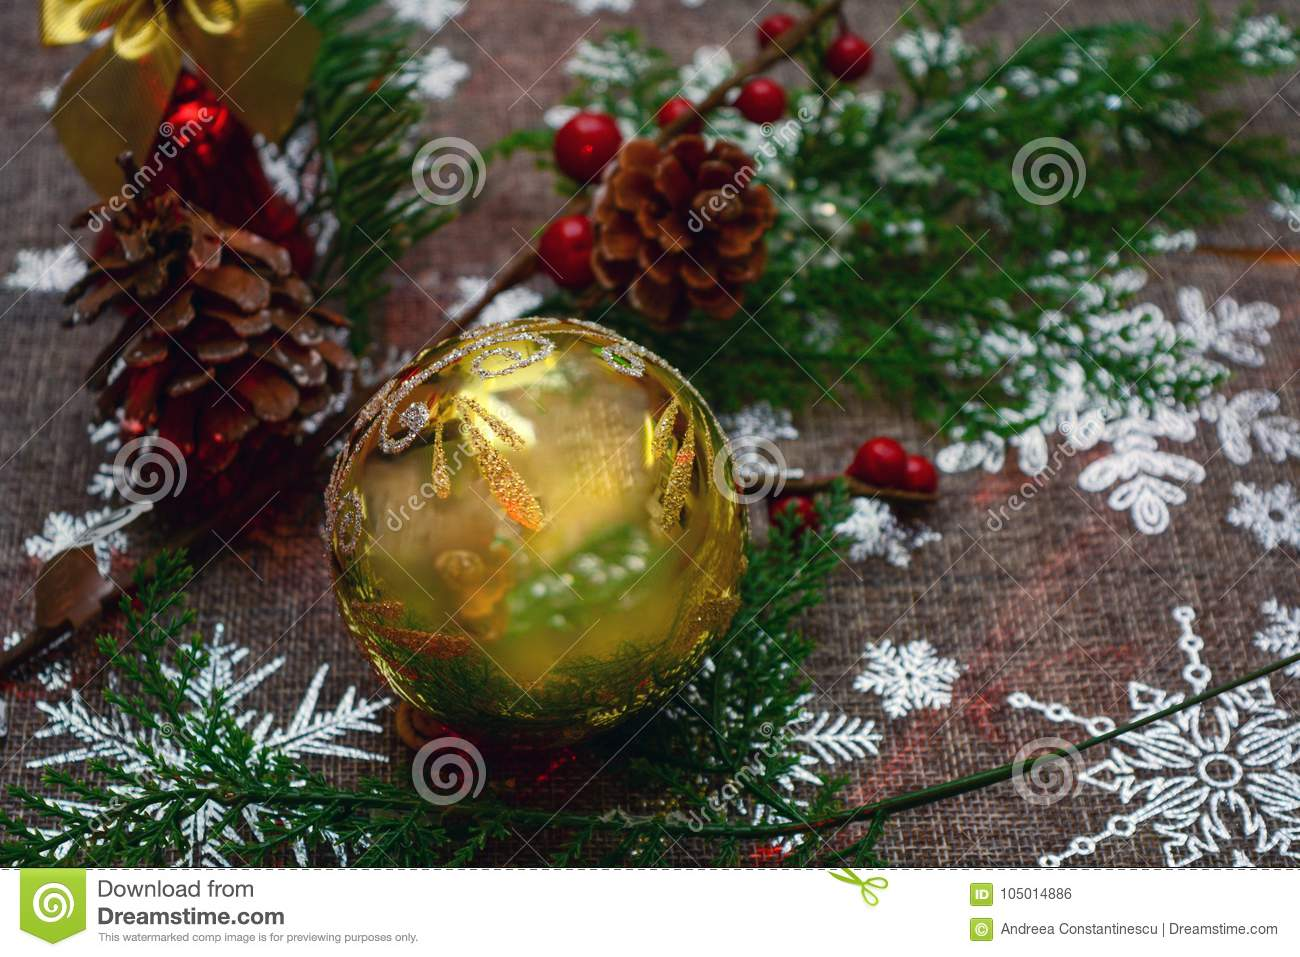 download christmas decorations stock photo image of dance beauty 105014886